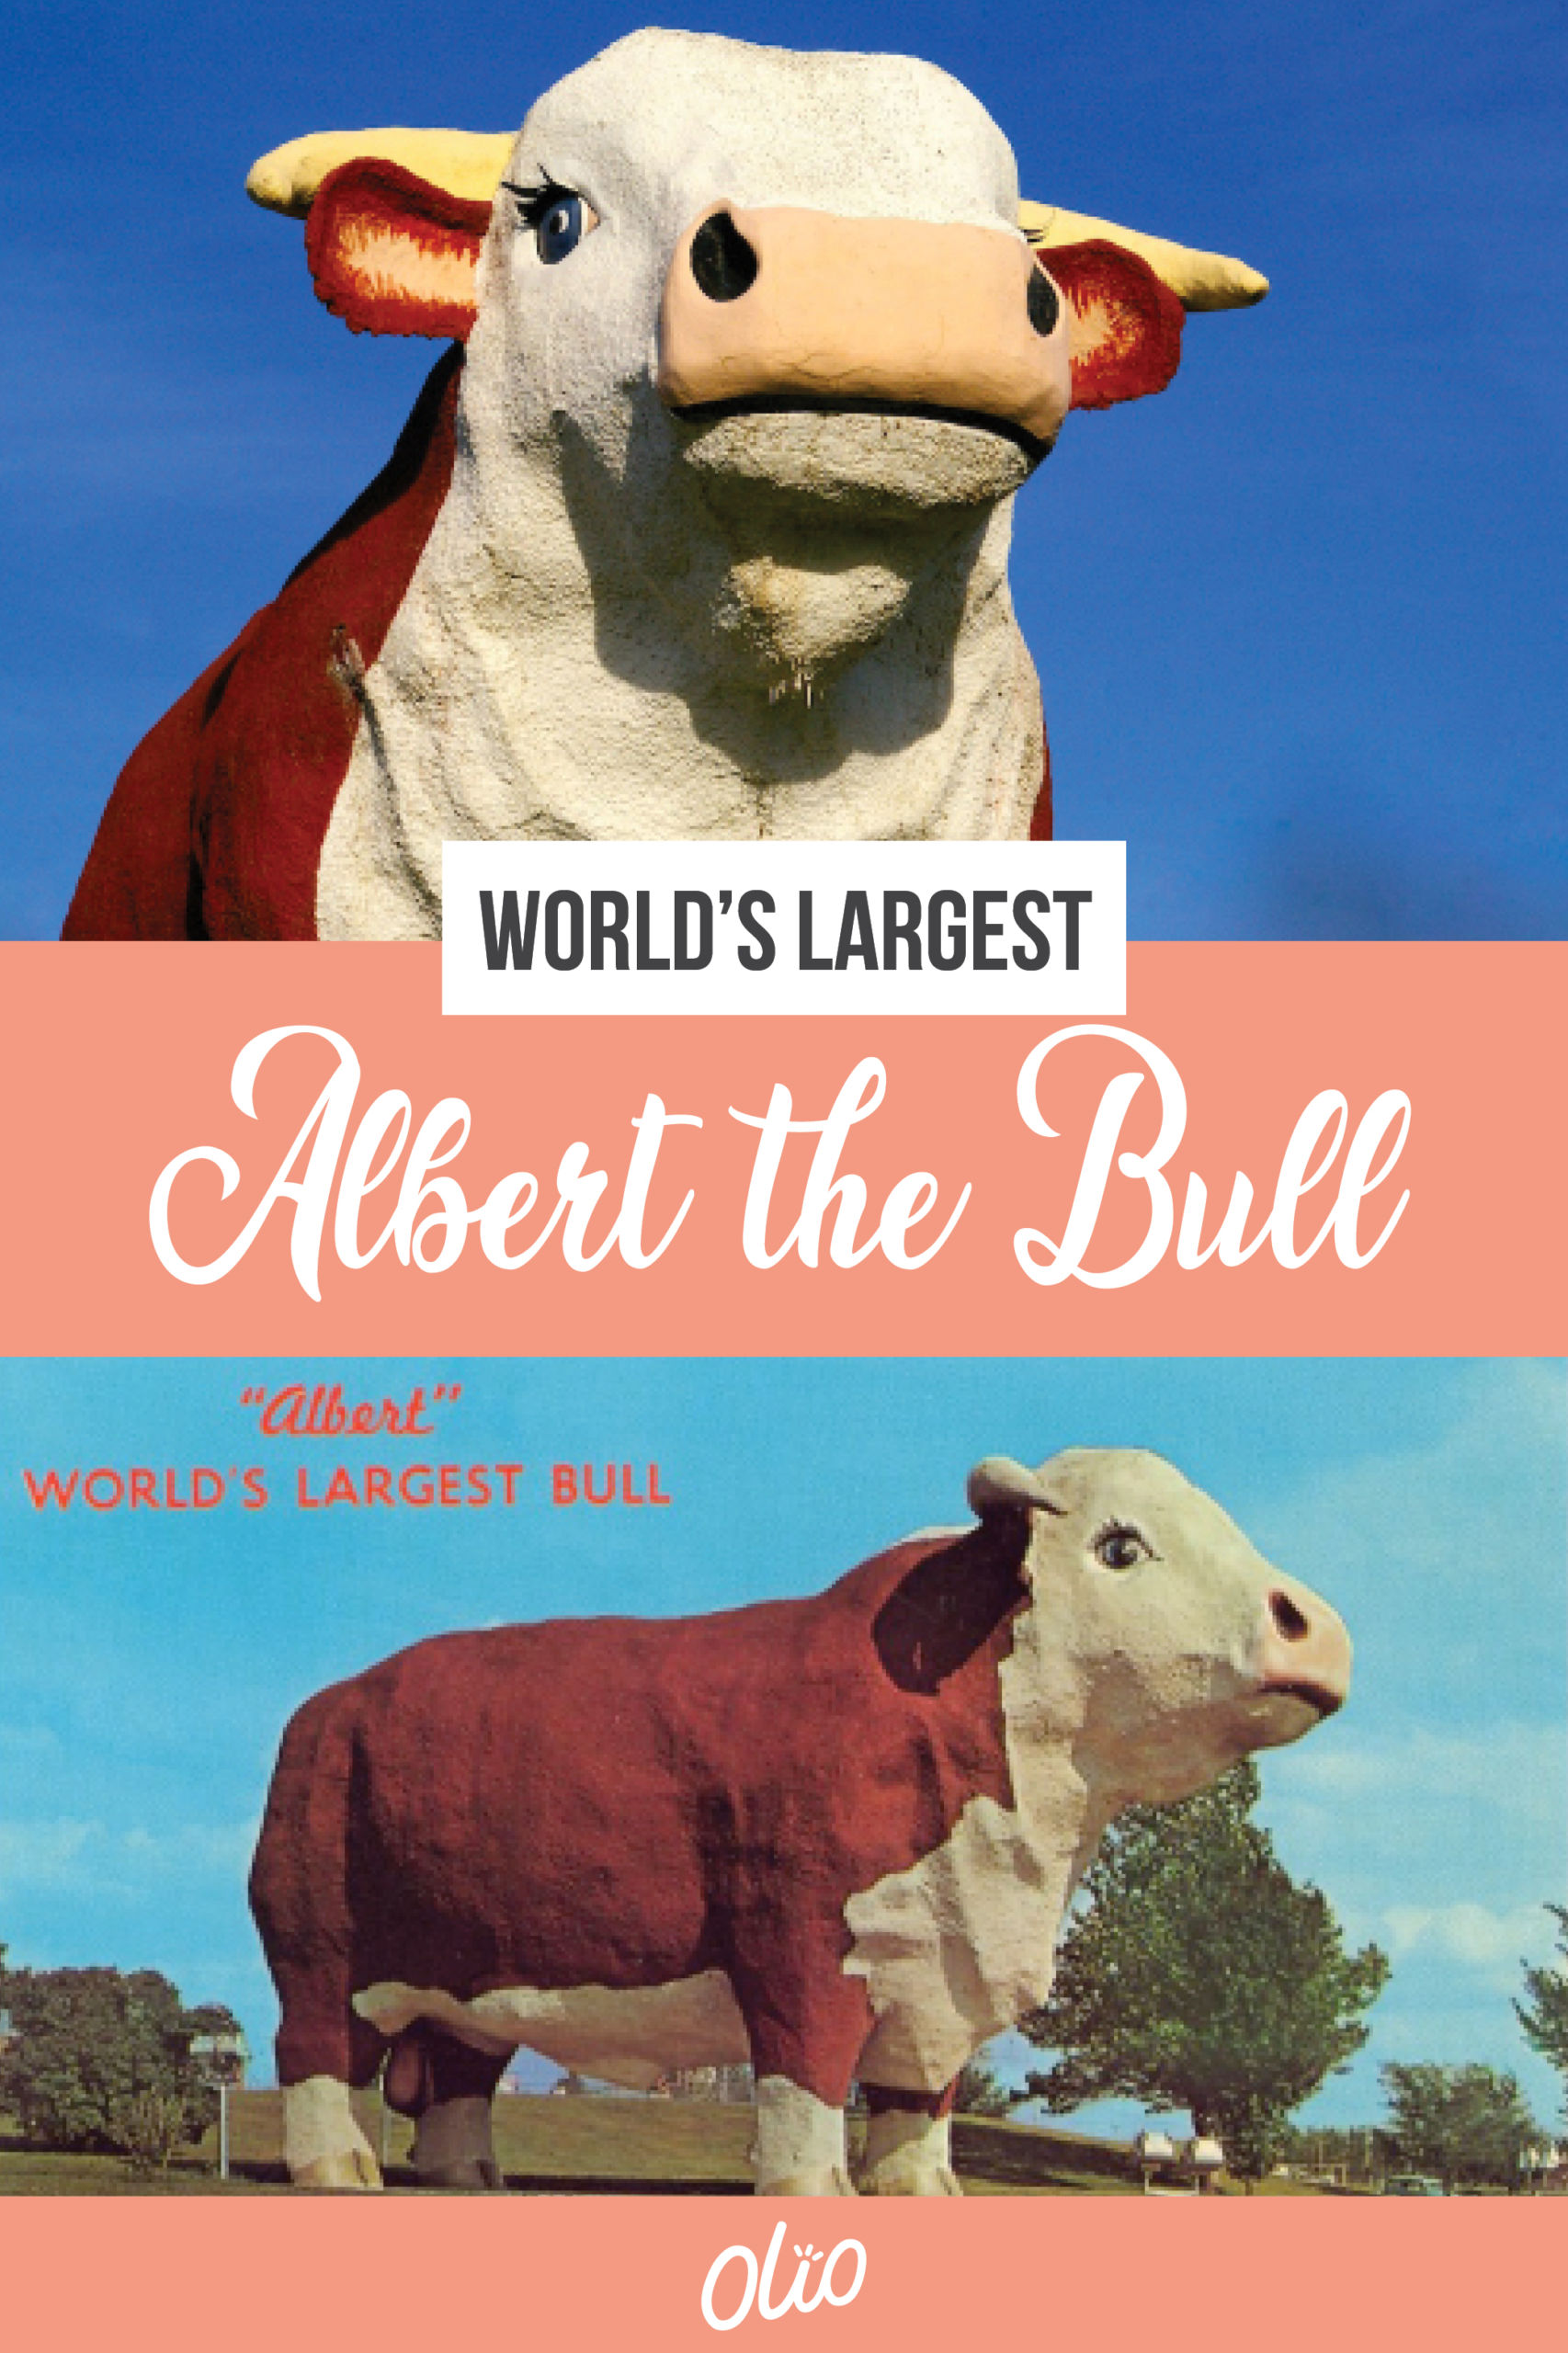 Looking for an offbeat Iowa attraction? Meet Albert the World's Largest Bull! A realistic Hereford replica, Albert calls Audubon, Iowa home. Towering 30 feet over the sprawling Iowa countryside, the concrete bull is a symbol not only of the area's cattle raising past but also of its hopes for future generations. #Iowa #WorldsLargest #RoadsideAttractions